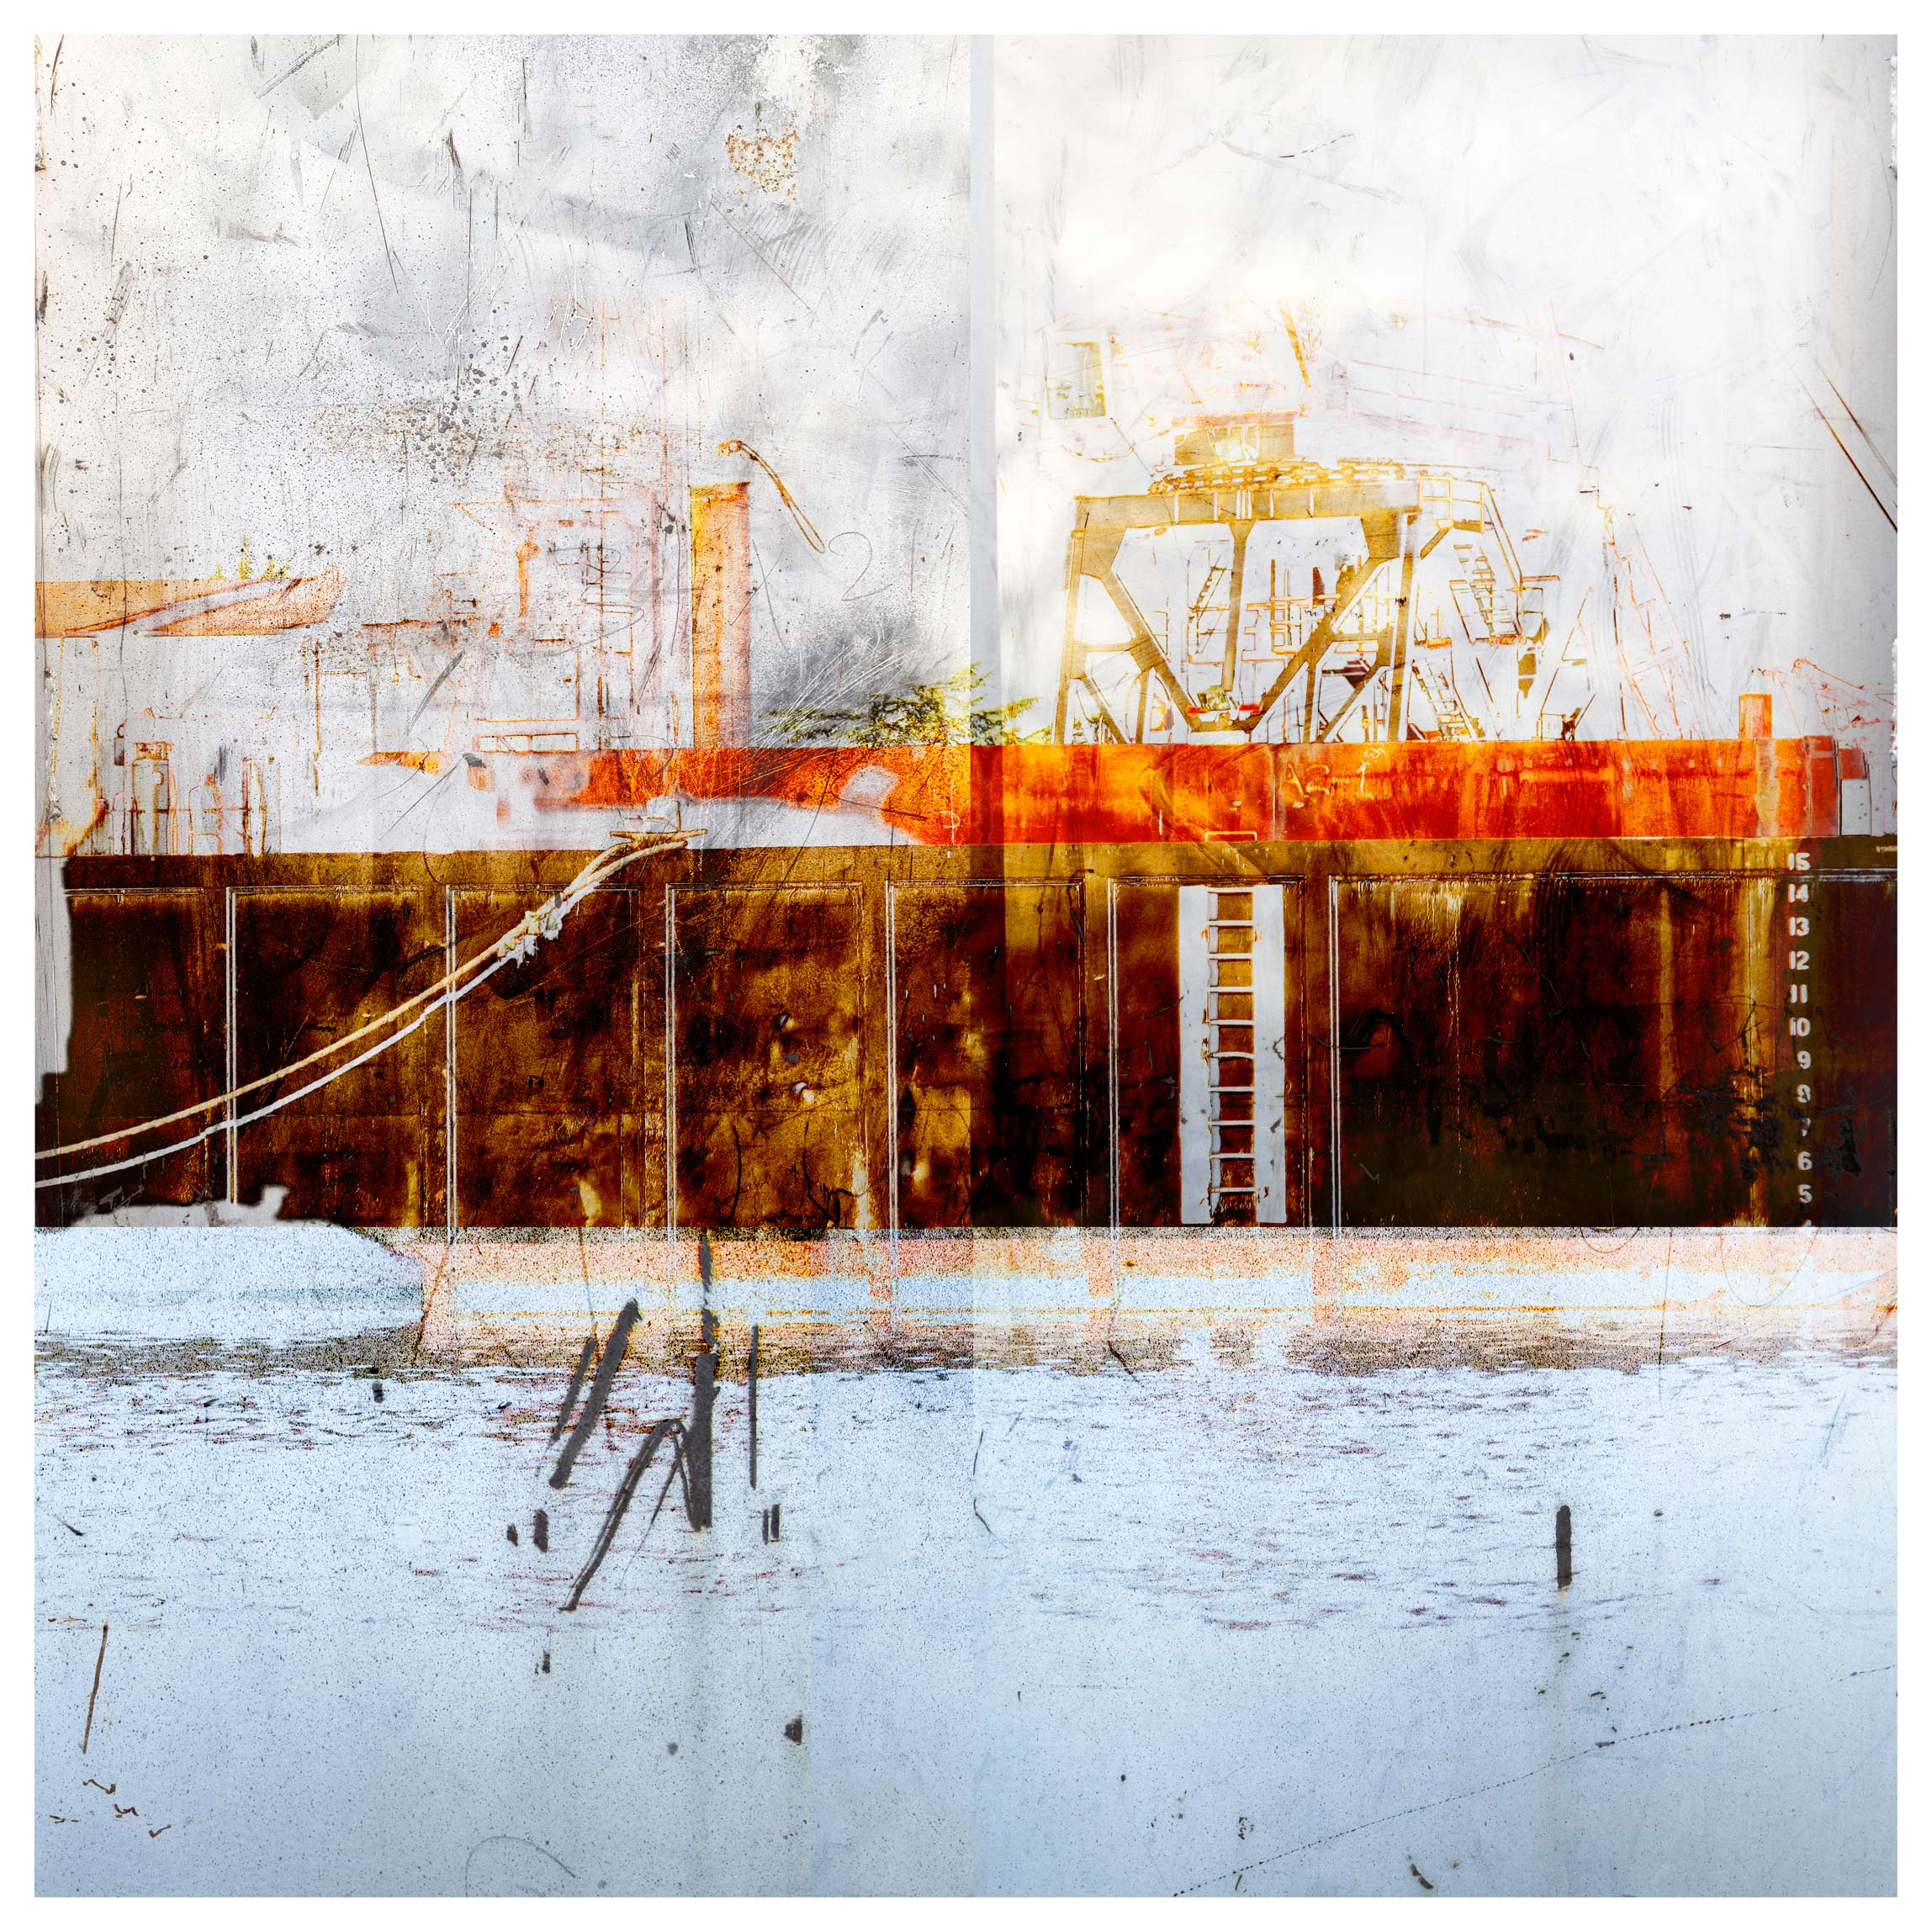 Iskra Johnson, Barge, limited edition archival pigment print-digital collage